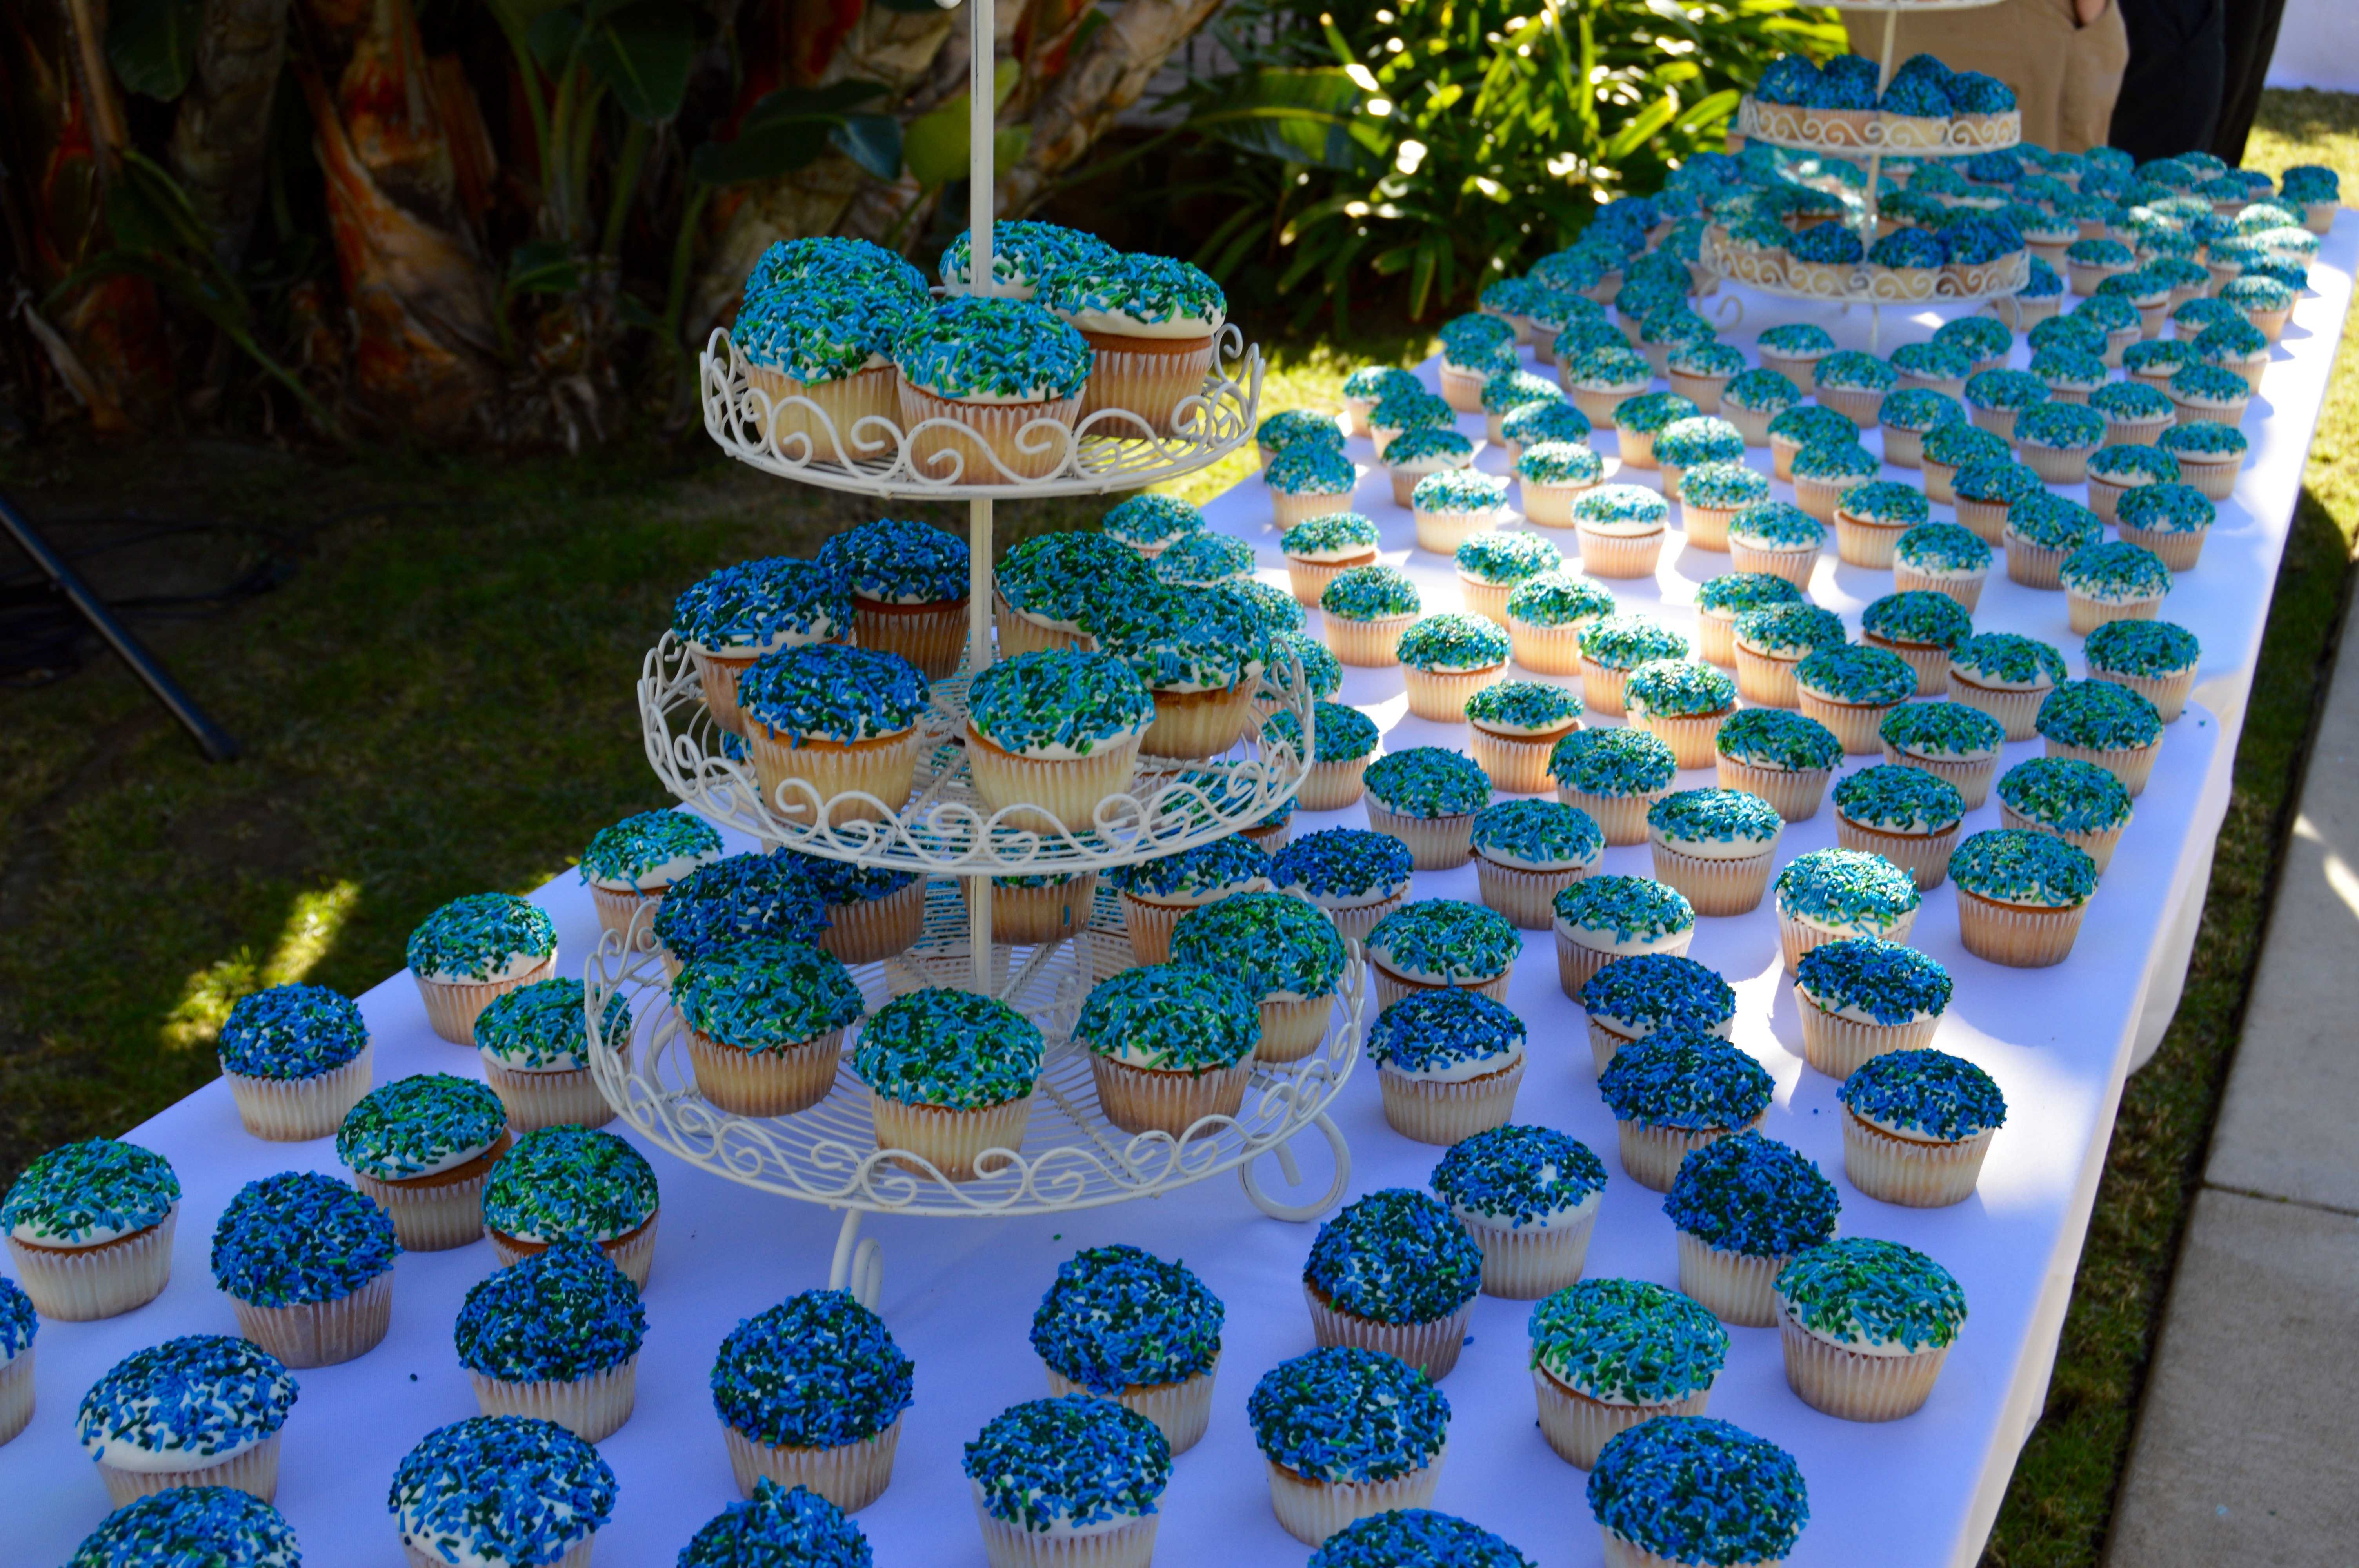 Administration+served+cupcakes+for+the+whole+Archer+community+in+celebration+of+the+school%27s+20th+year.+Photographer%3A+Nelly+Rouzroch+%2718